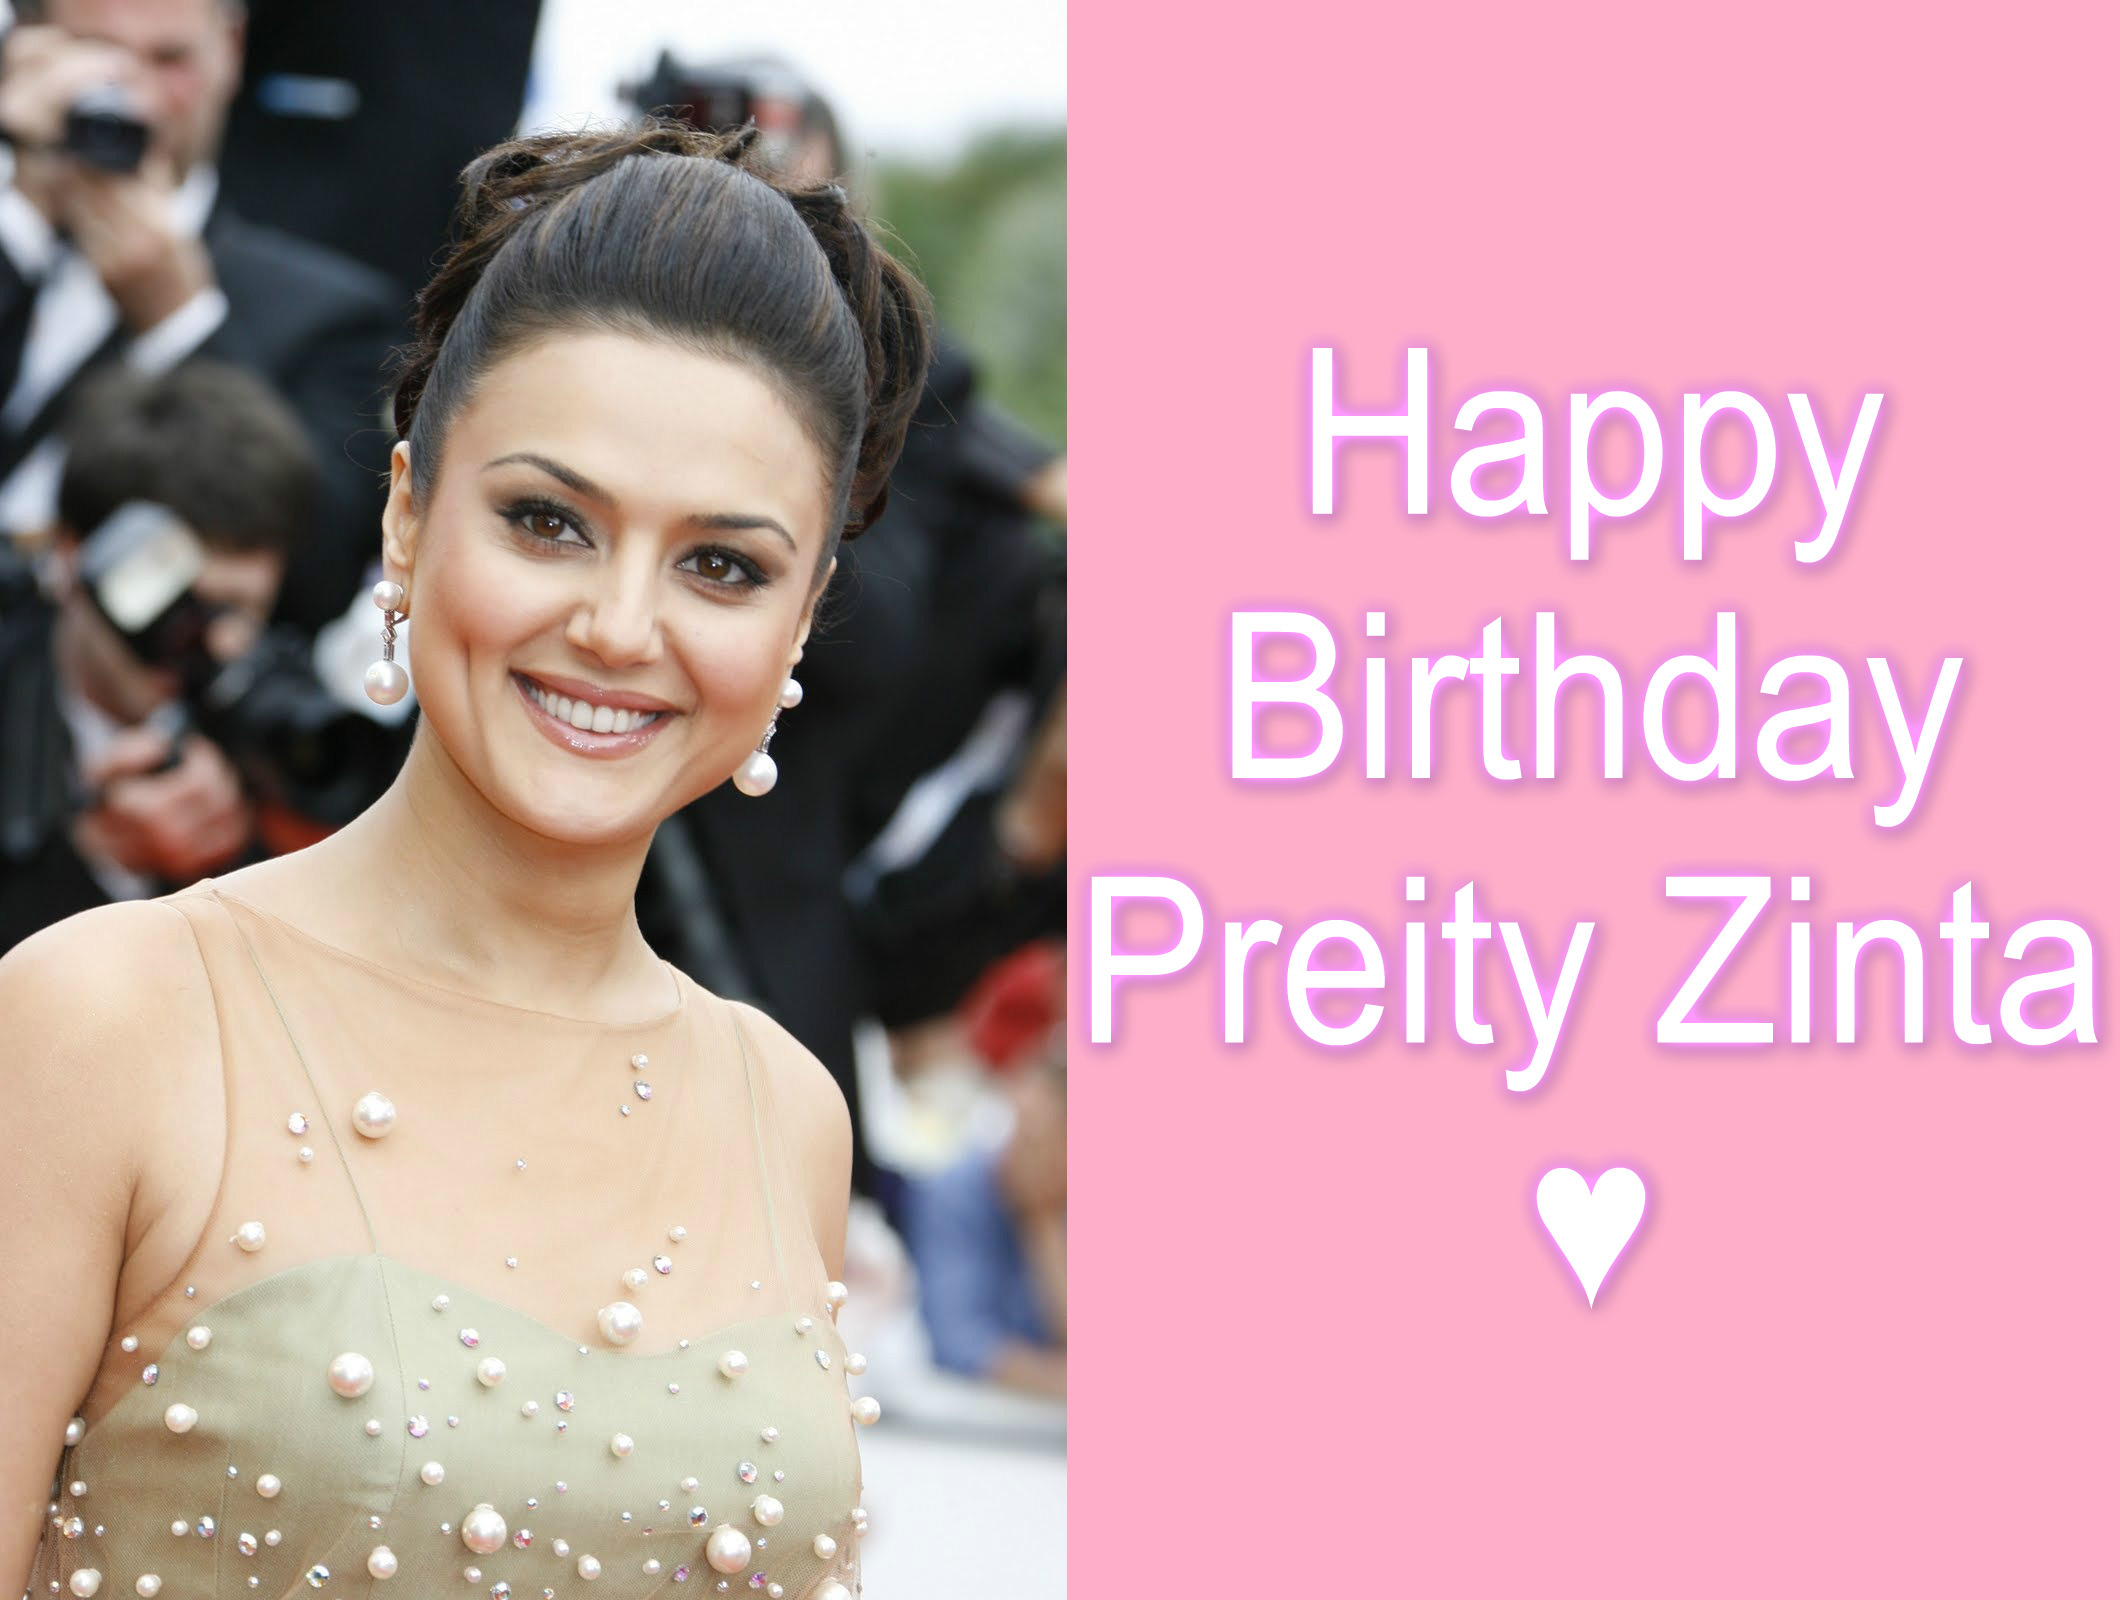 Birthday Special: We can't get enough of these roles played by Preity Zinta